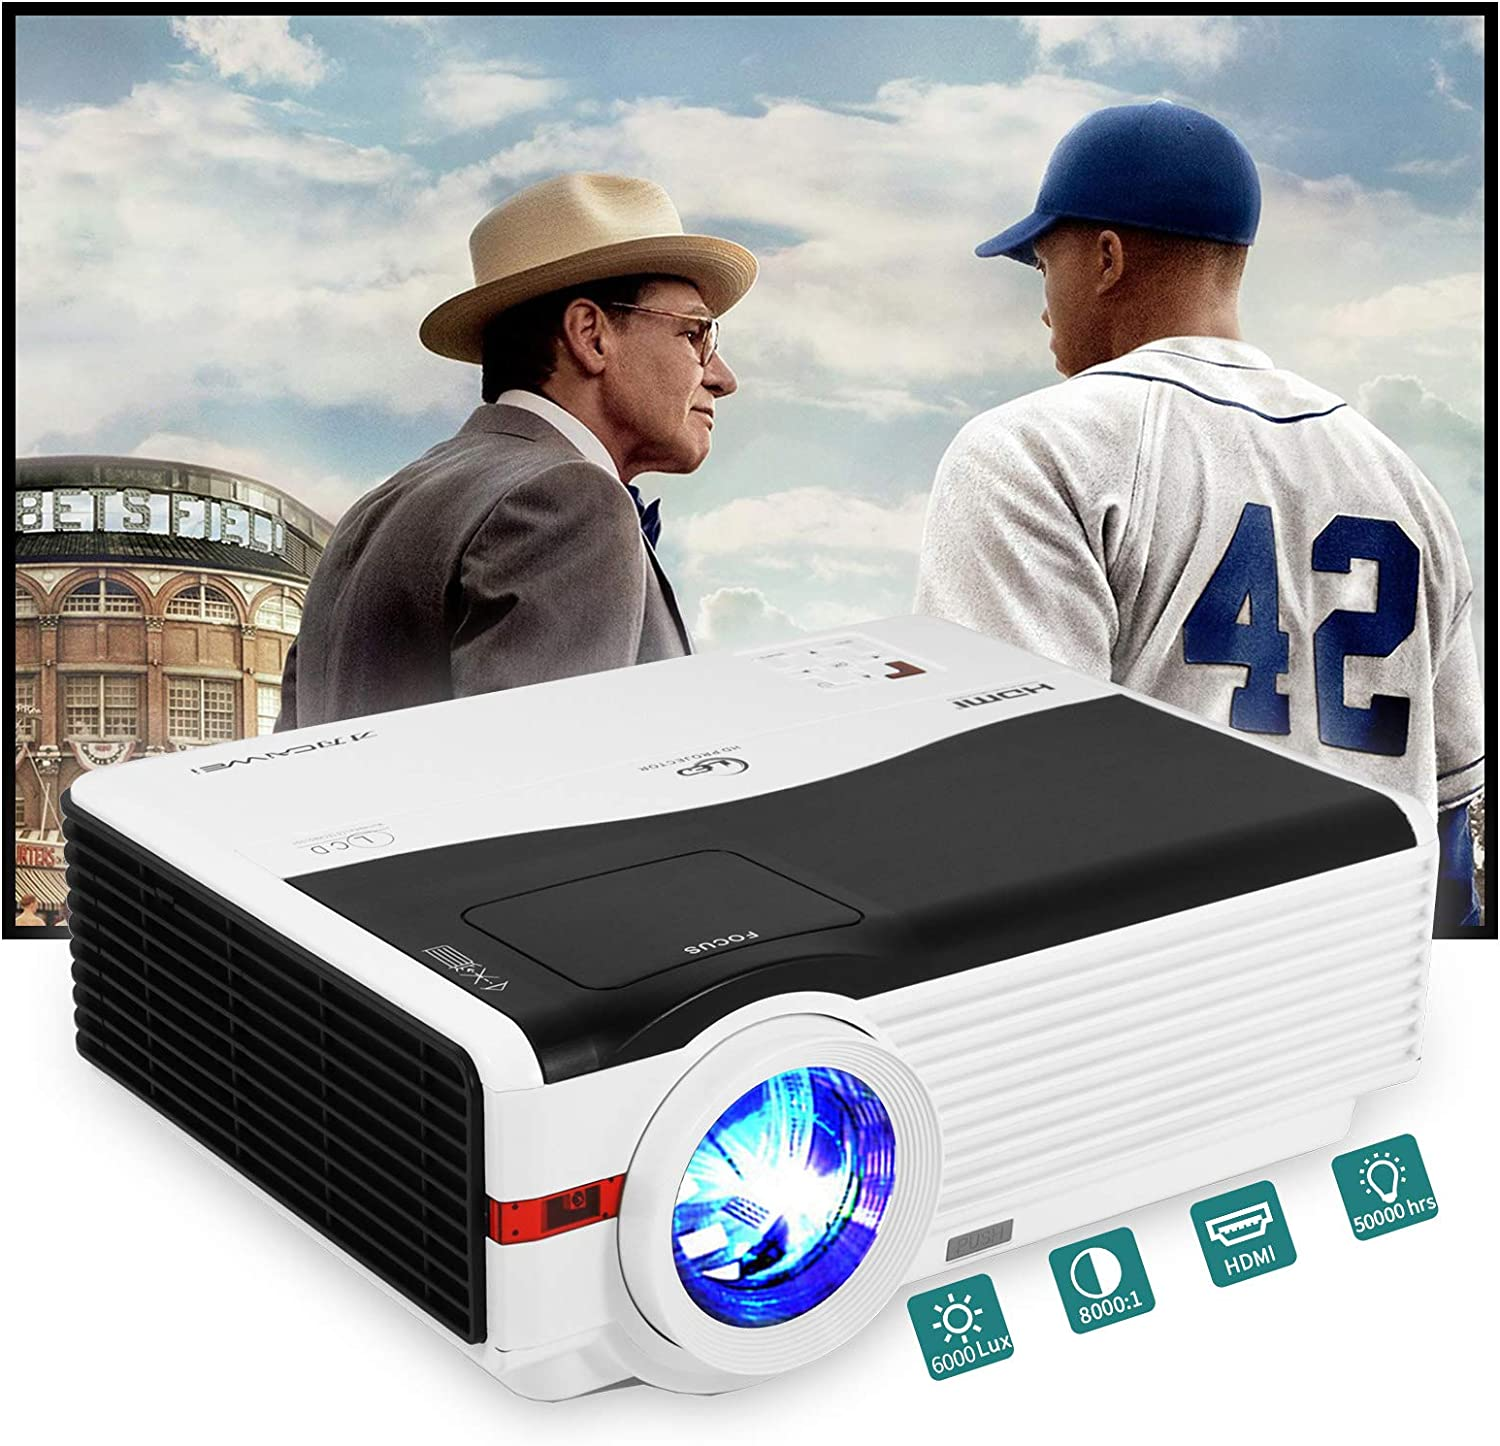 WiFi Bluetooth Projector HD 1080P Supported, 6000 Lumen LED Wireless Projector with Zoom, HiFi Speaker, Home Projector Compatible with Laptop, PS4, Smartphones, TV Stick, HDMI, USB for Outdoor Movie